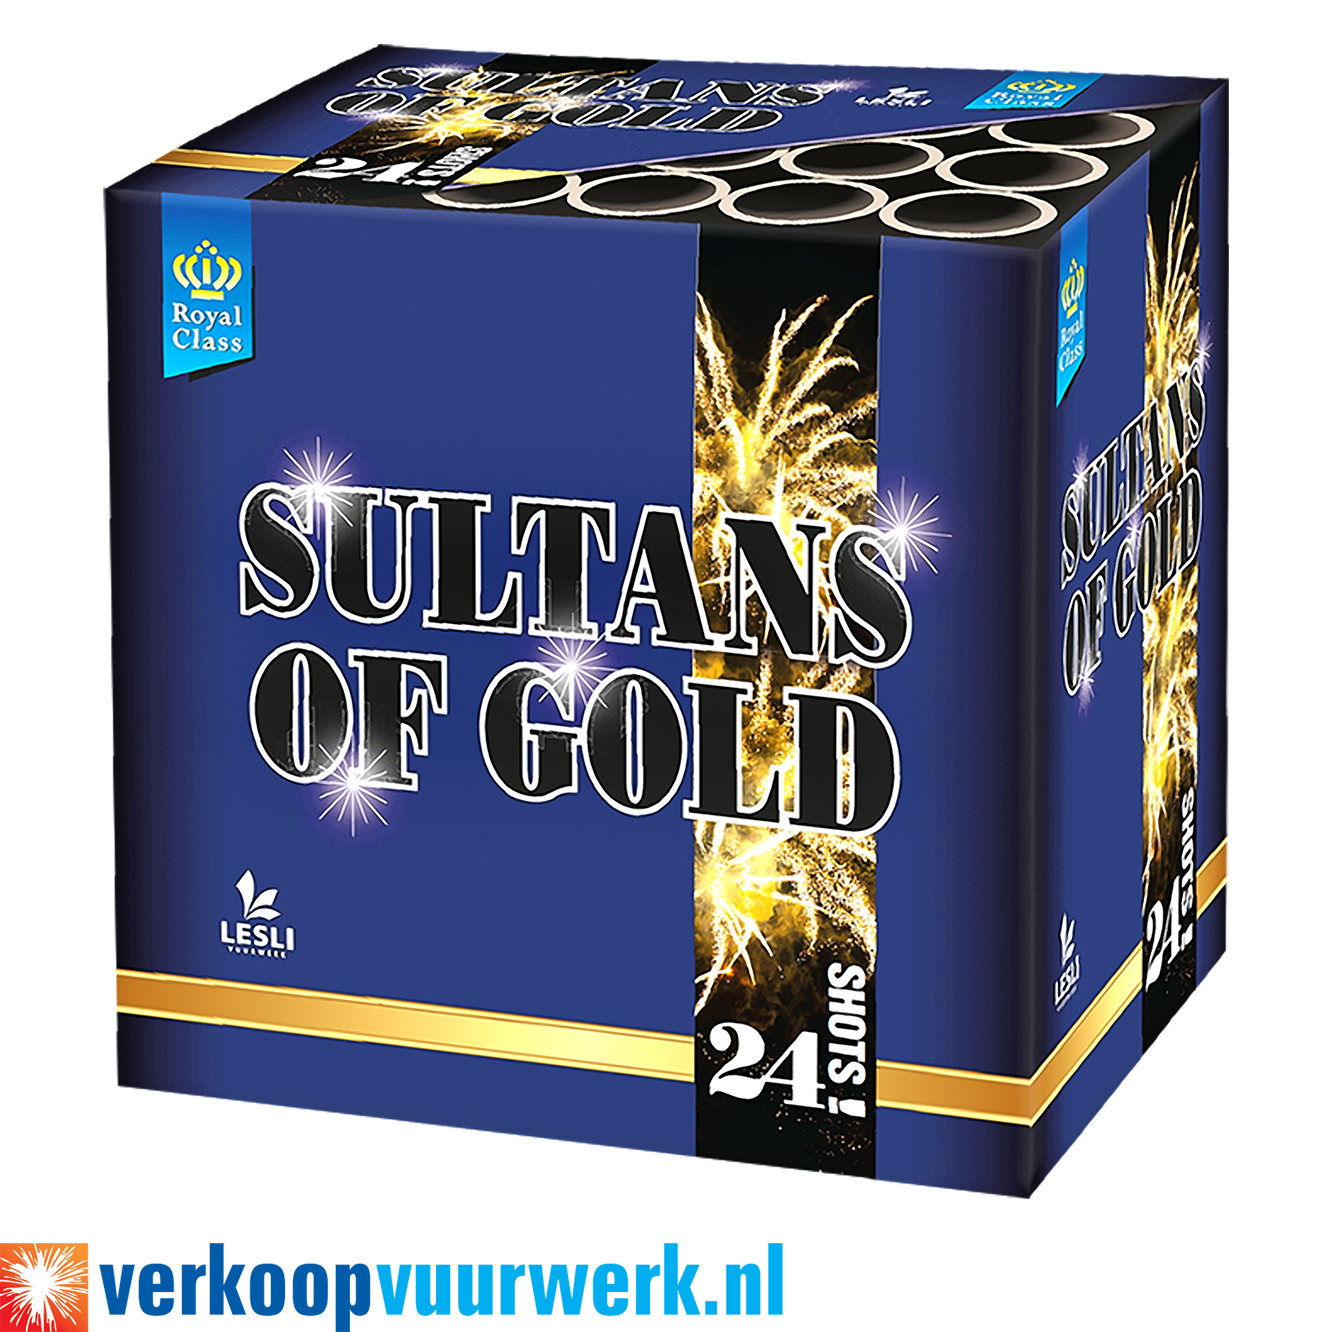 Sultans of gold